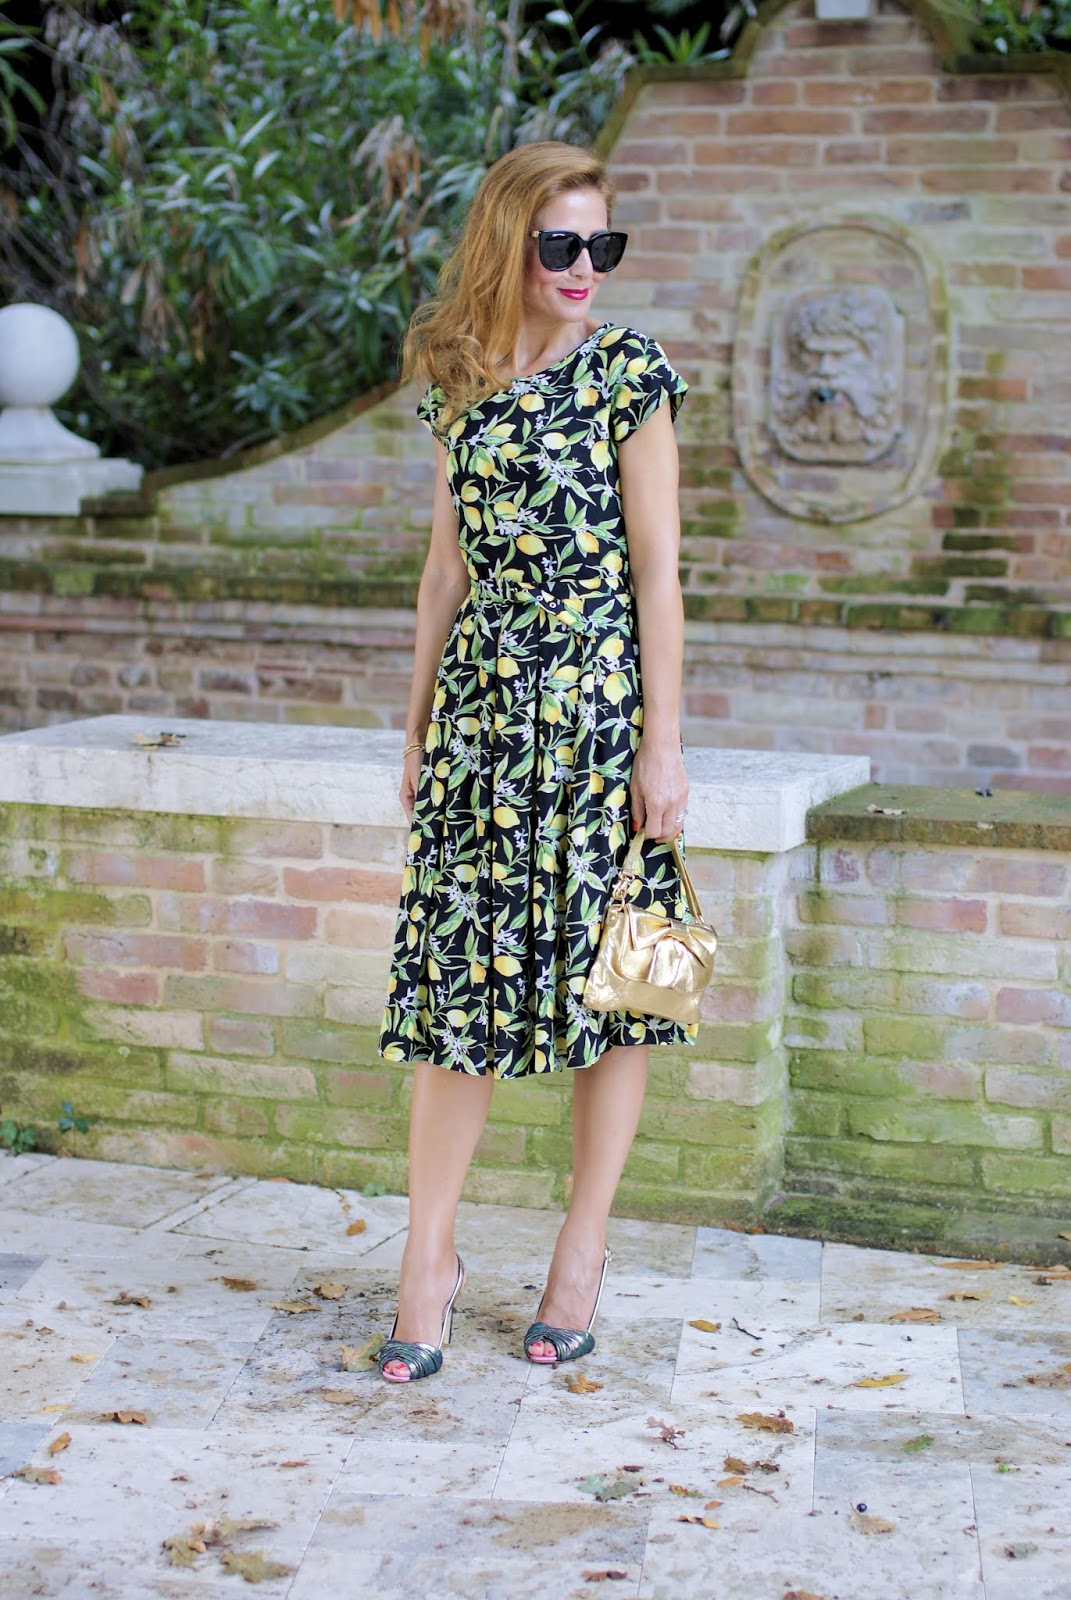 Lemon print dress for a ladylike outfit and Giancarlo Paoli heels on Fashion and Cookies fashion blog, fashion blogger